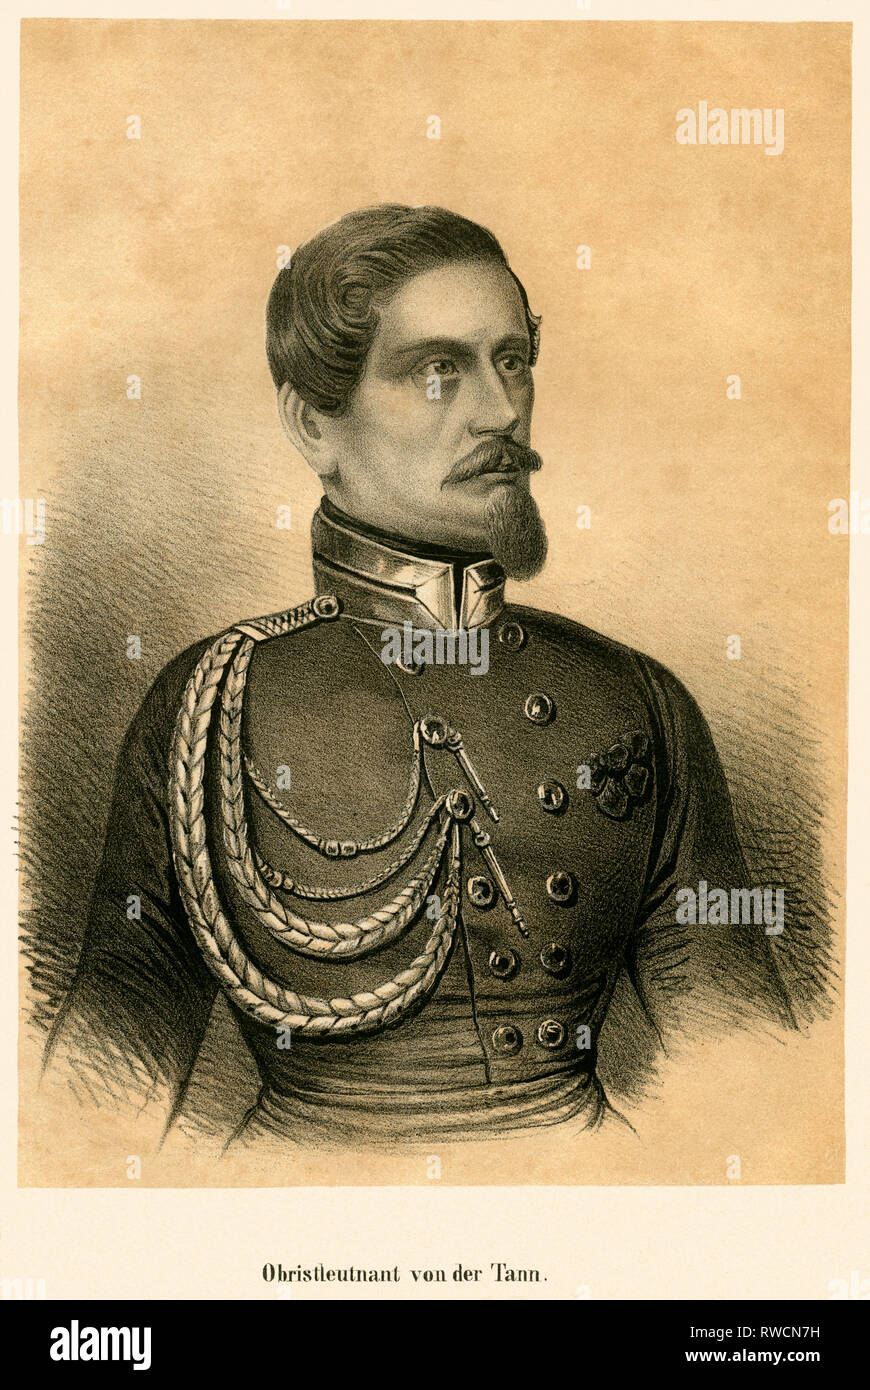 Germany, Hesse, Darmstadt, Ludwig von der Tann, lithography around 1850., Additional-Rights-Clearance-Info-Not-Available - Stock Image